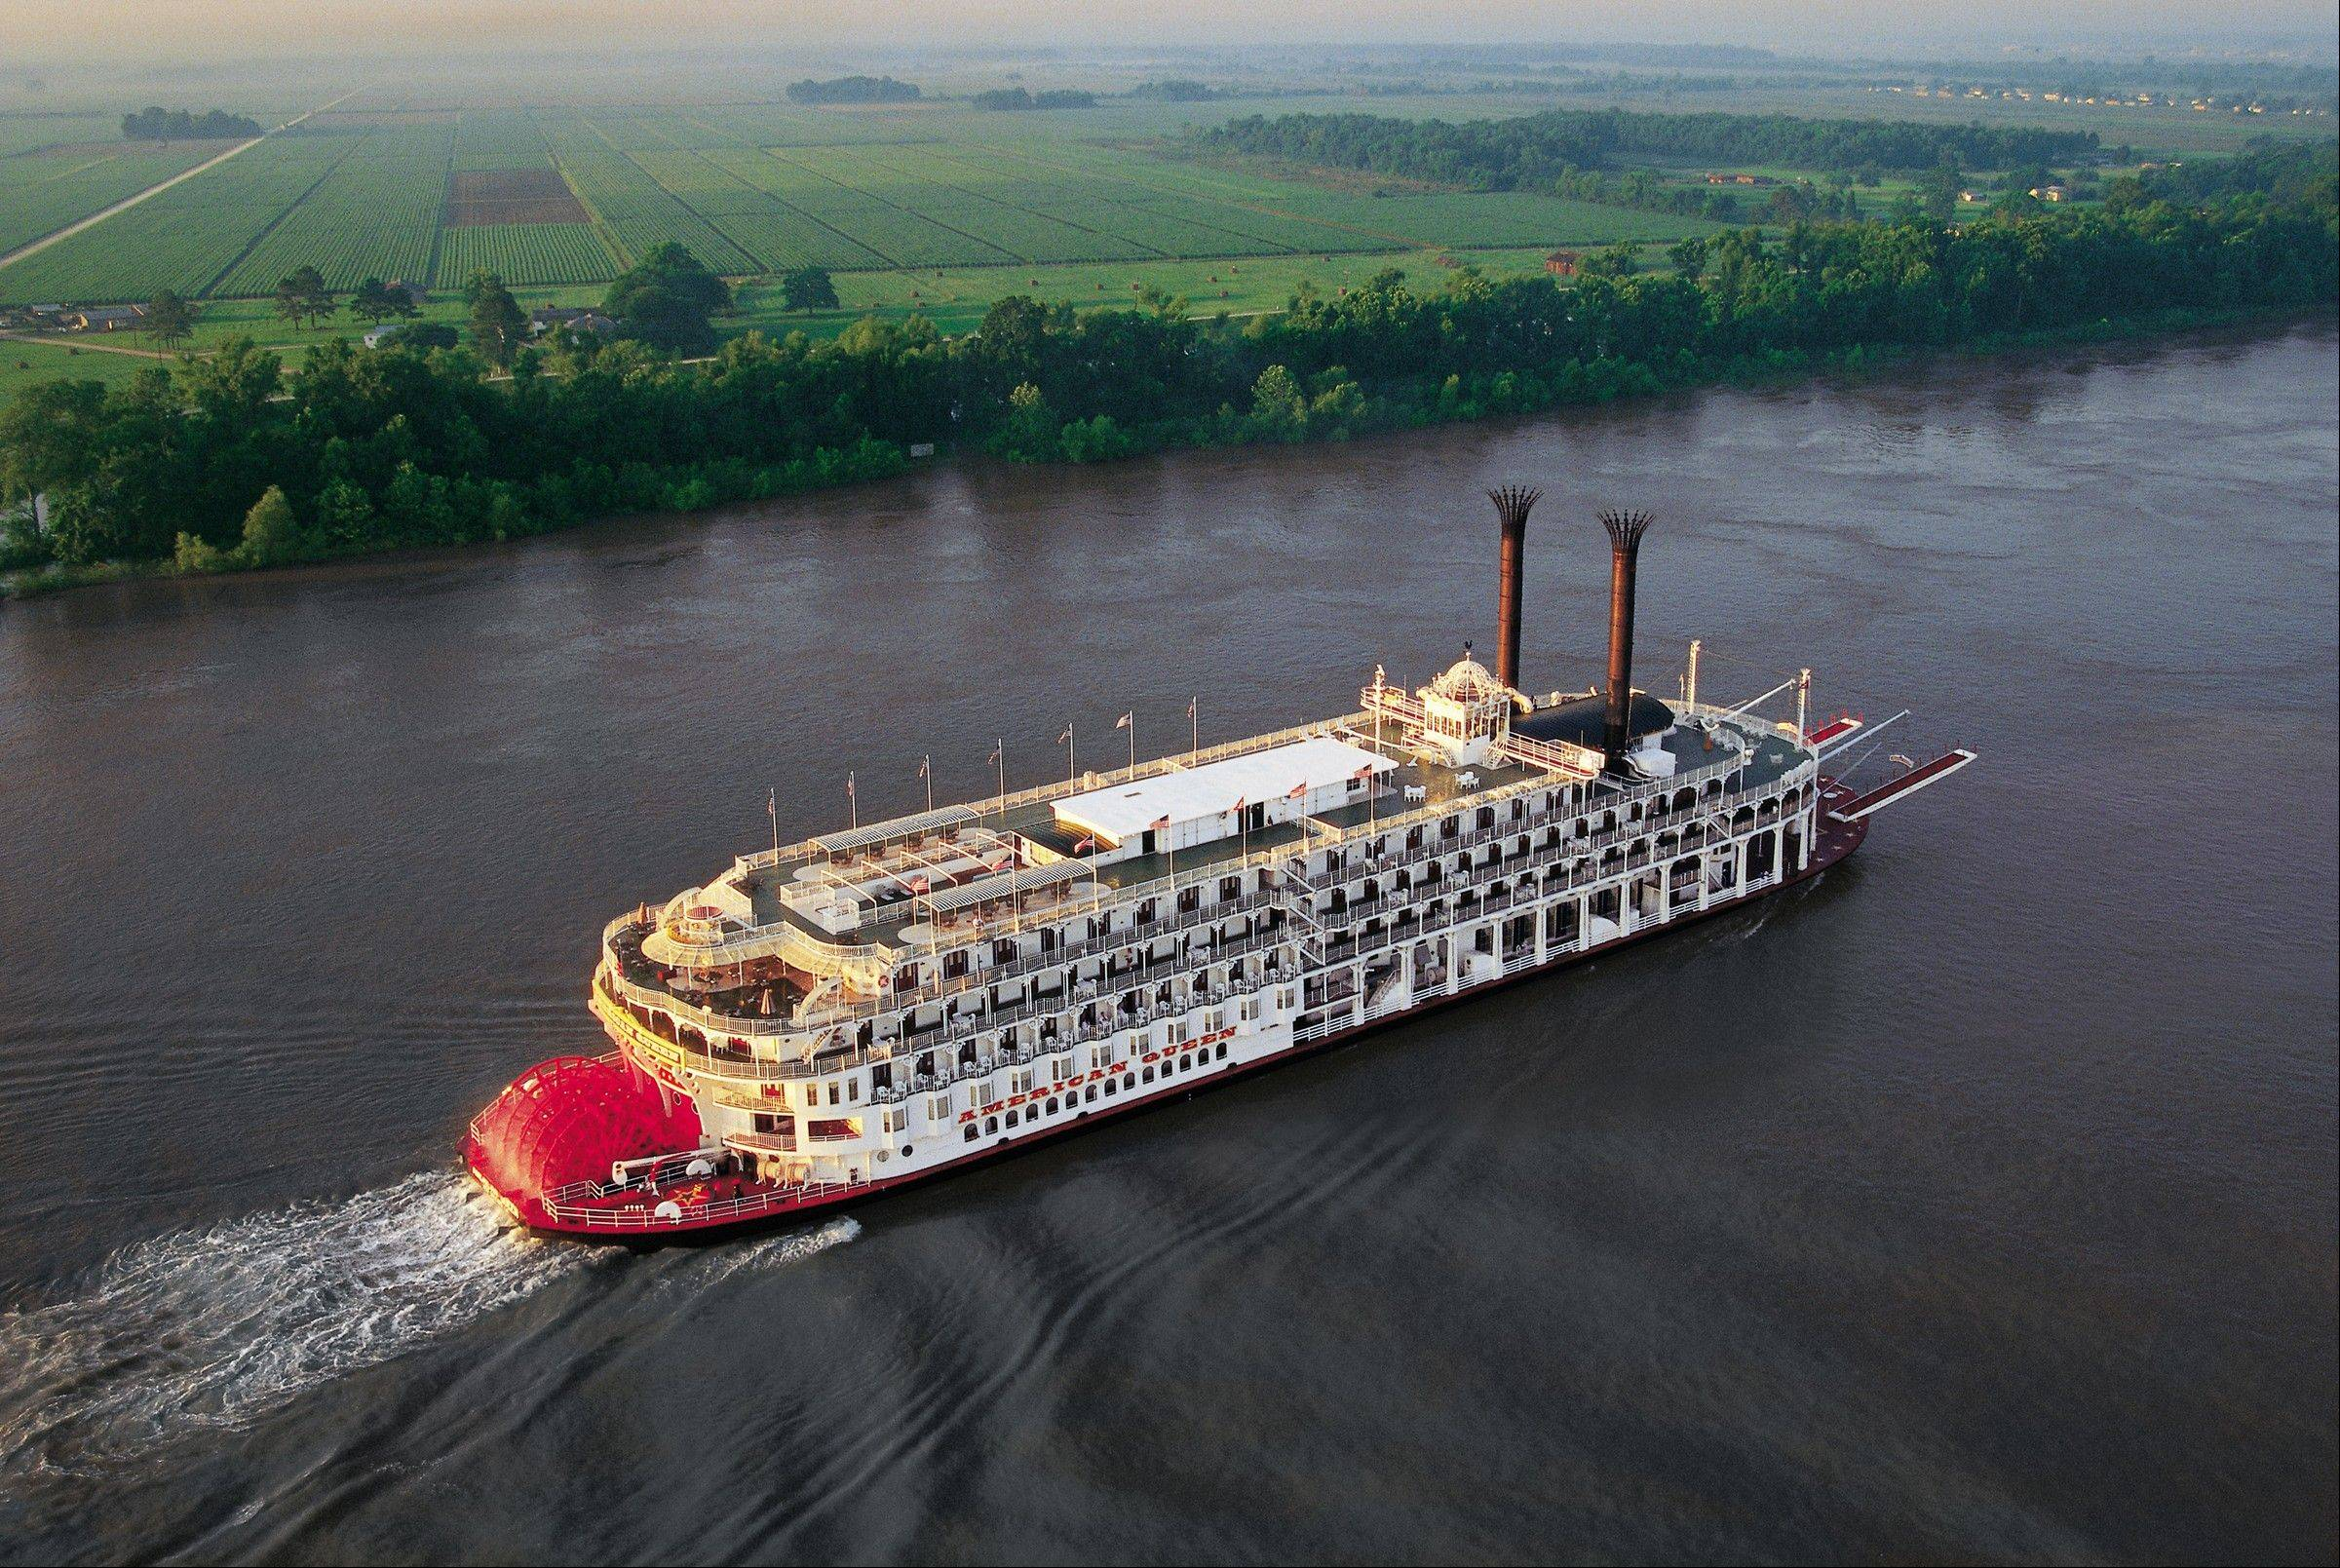 The refurbished American Queen steamboat will take travelers on an Epic Civil War Journey Voyage for 12 nights in August.